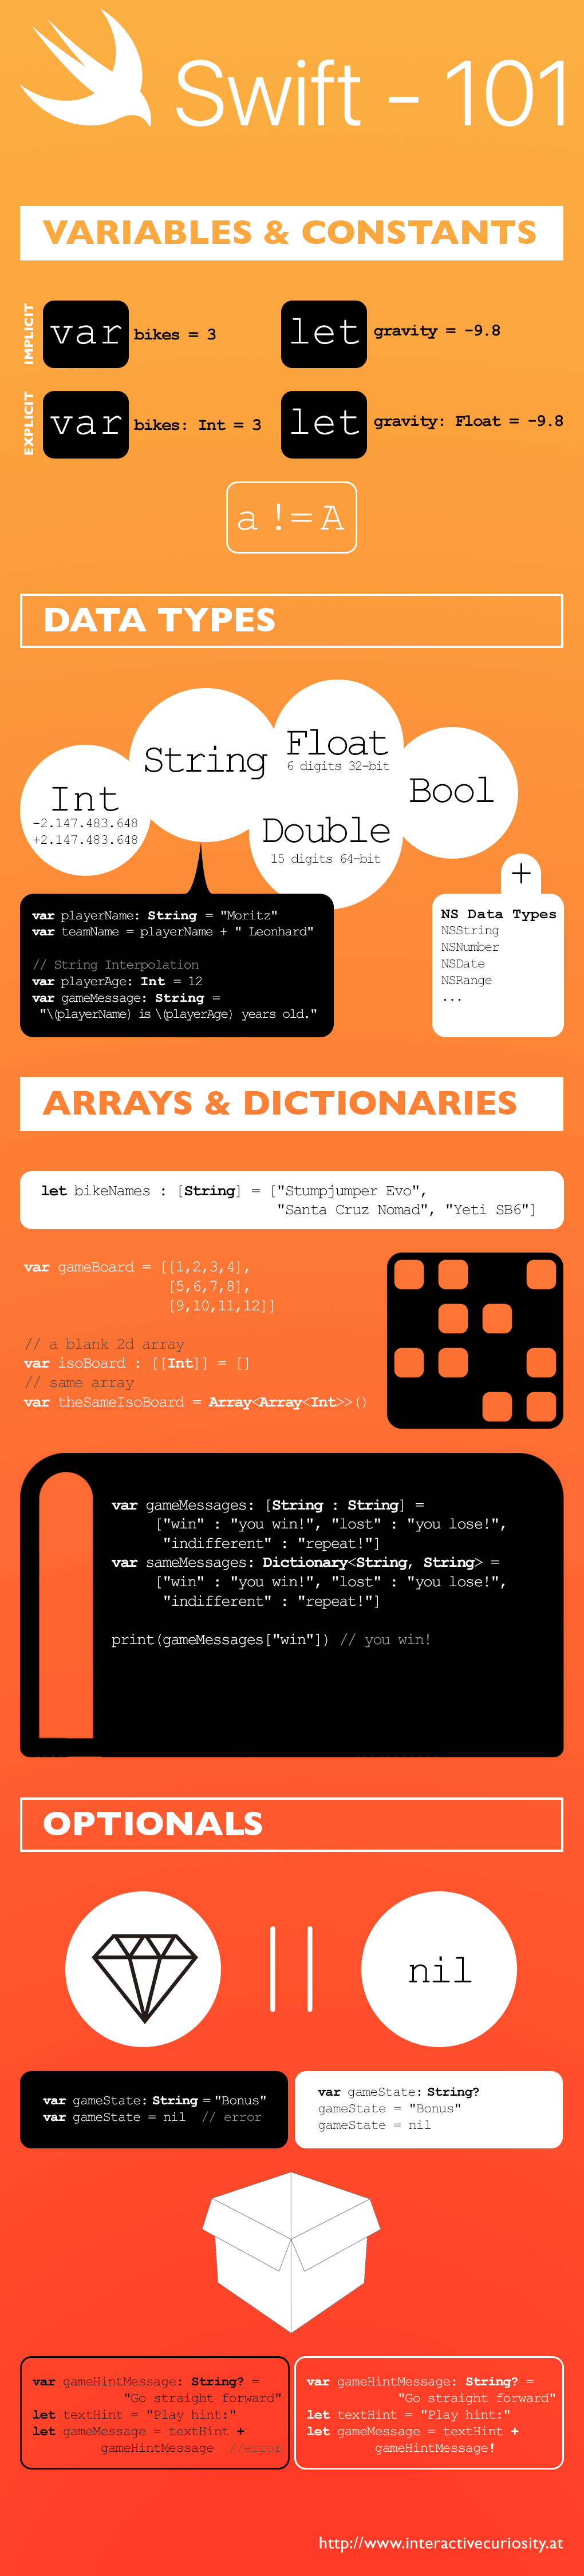 infographic swift 101 by www.interactivecuriosity.at